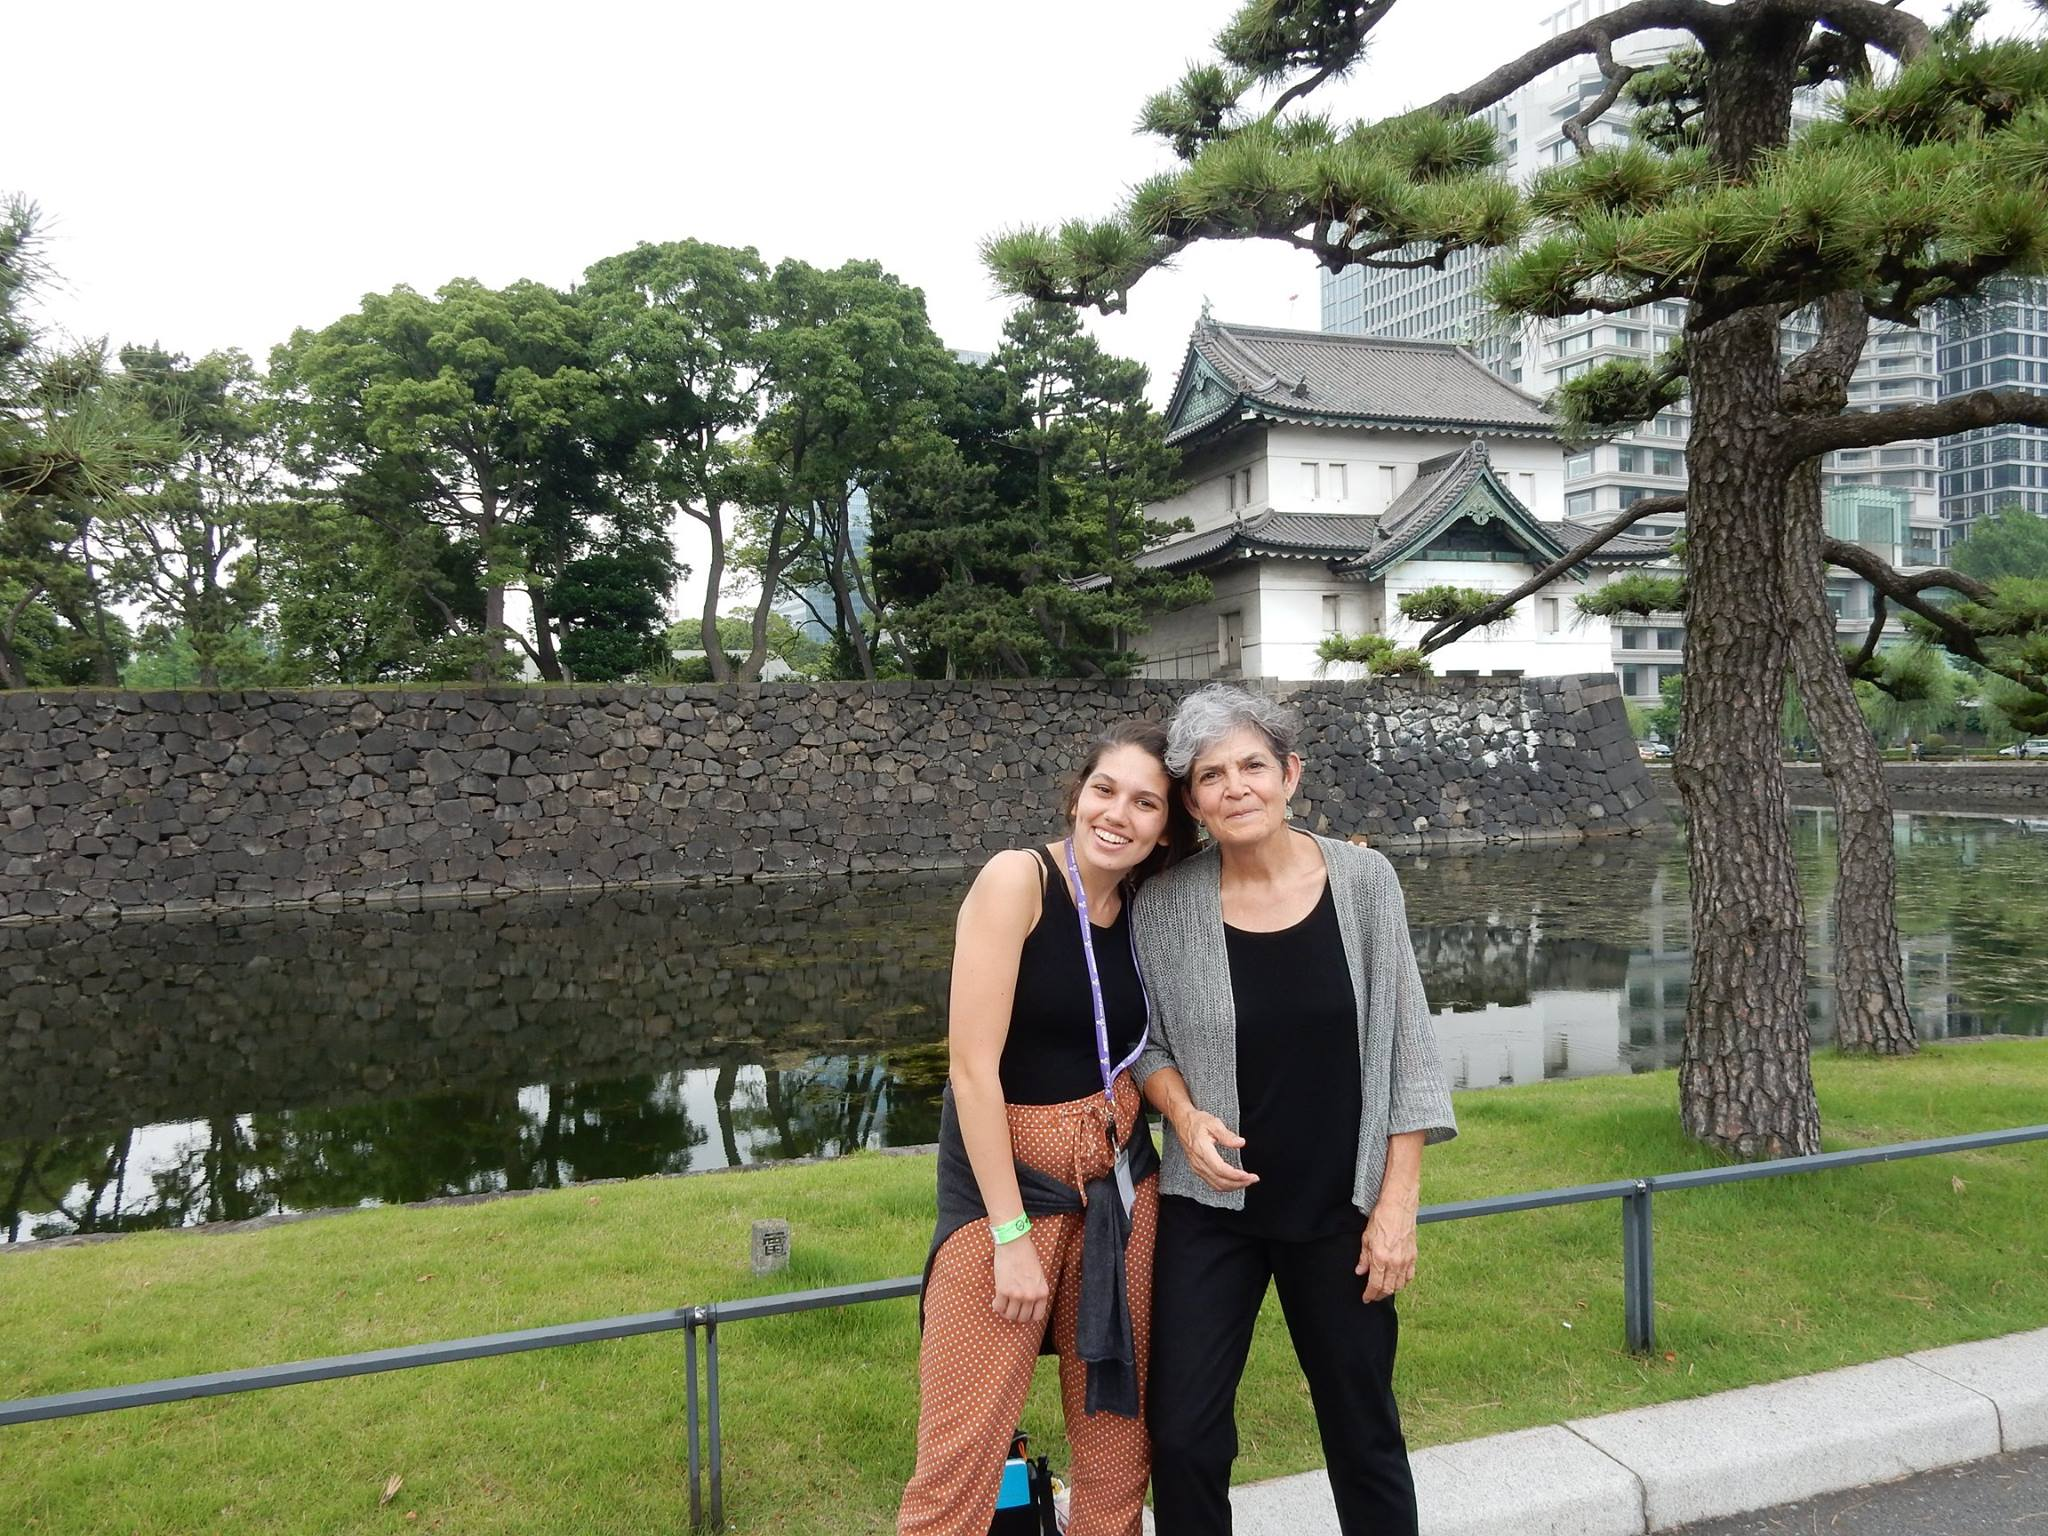 Professor Curt Hansman and Student Emily Spurgeon in Japan for Study Abroad!